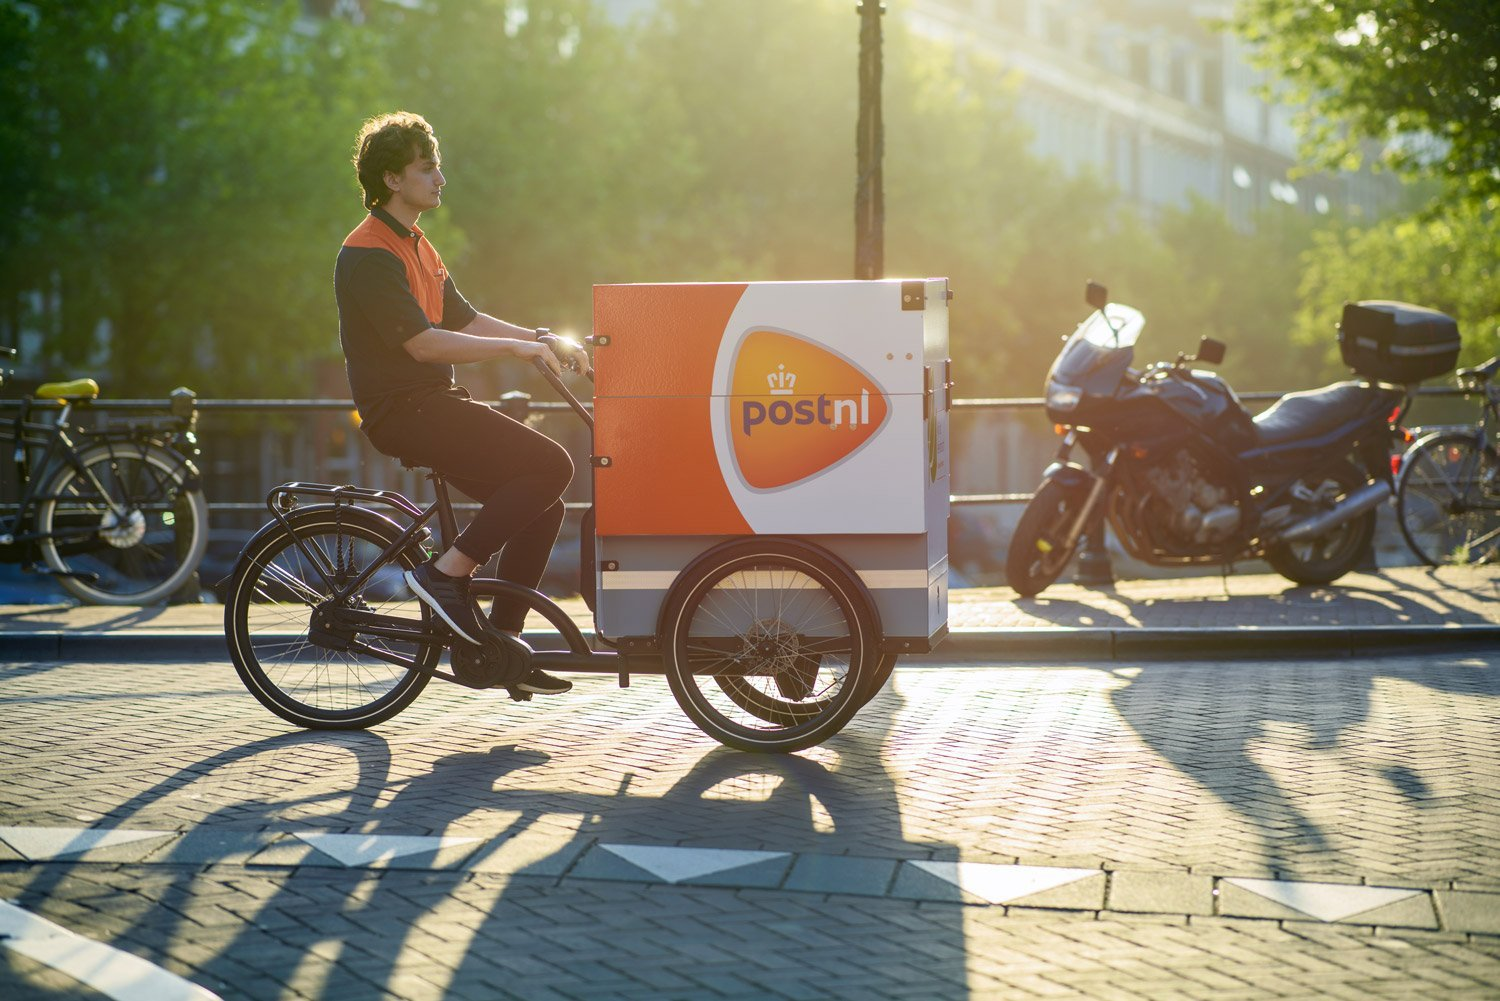 POST NL electric delivery bike